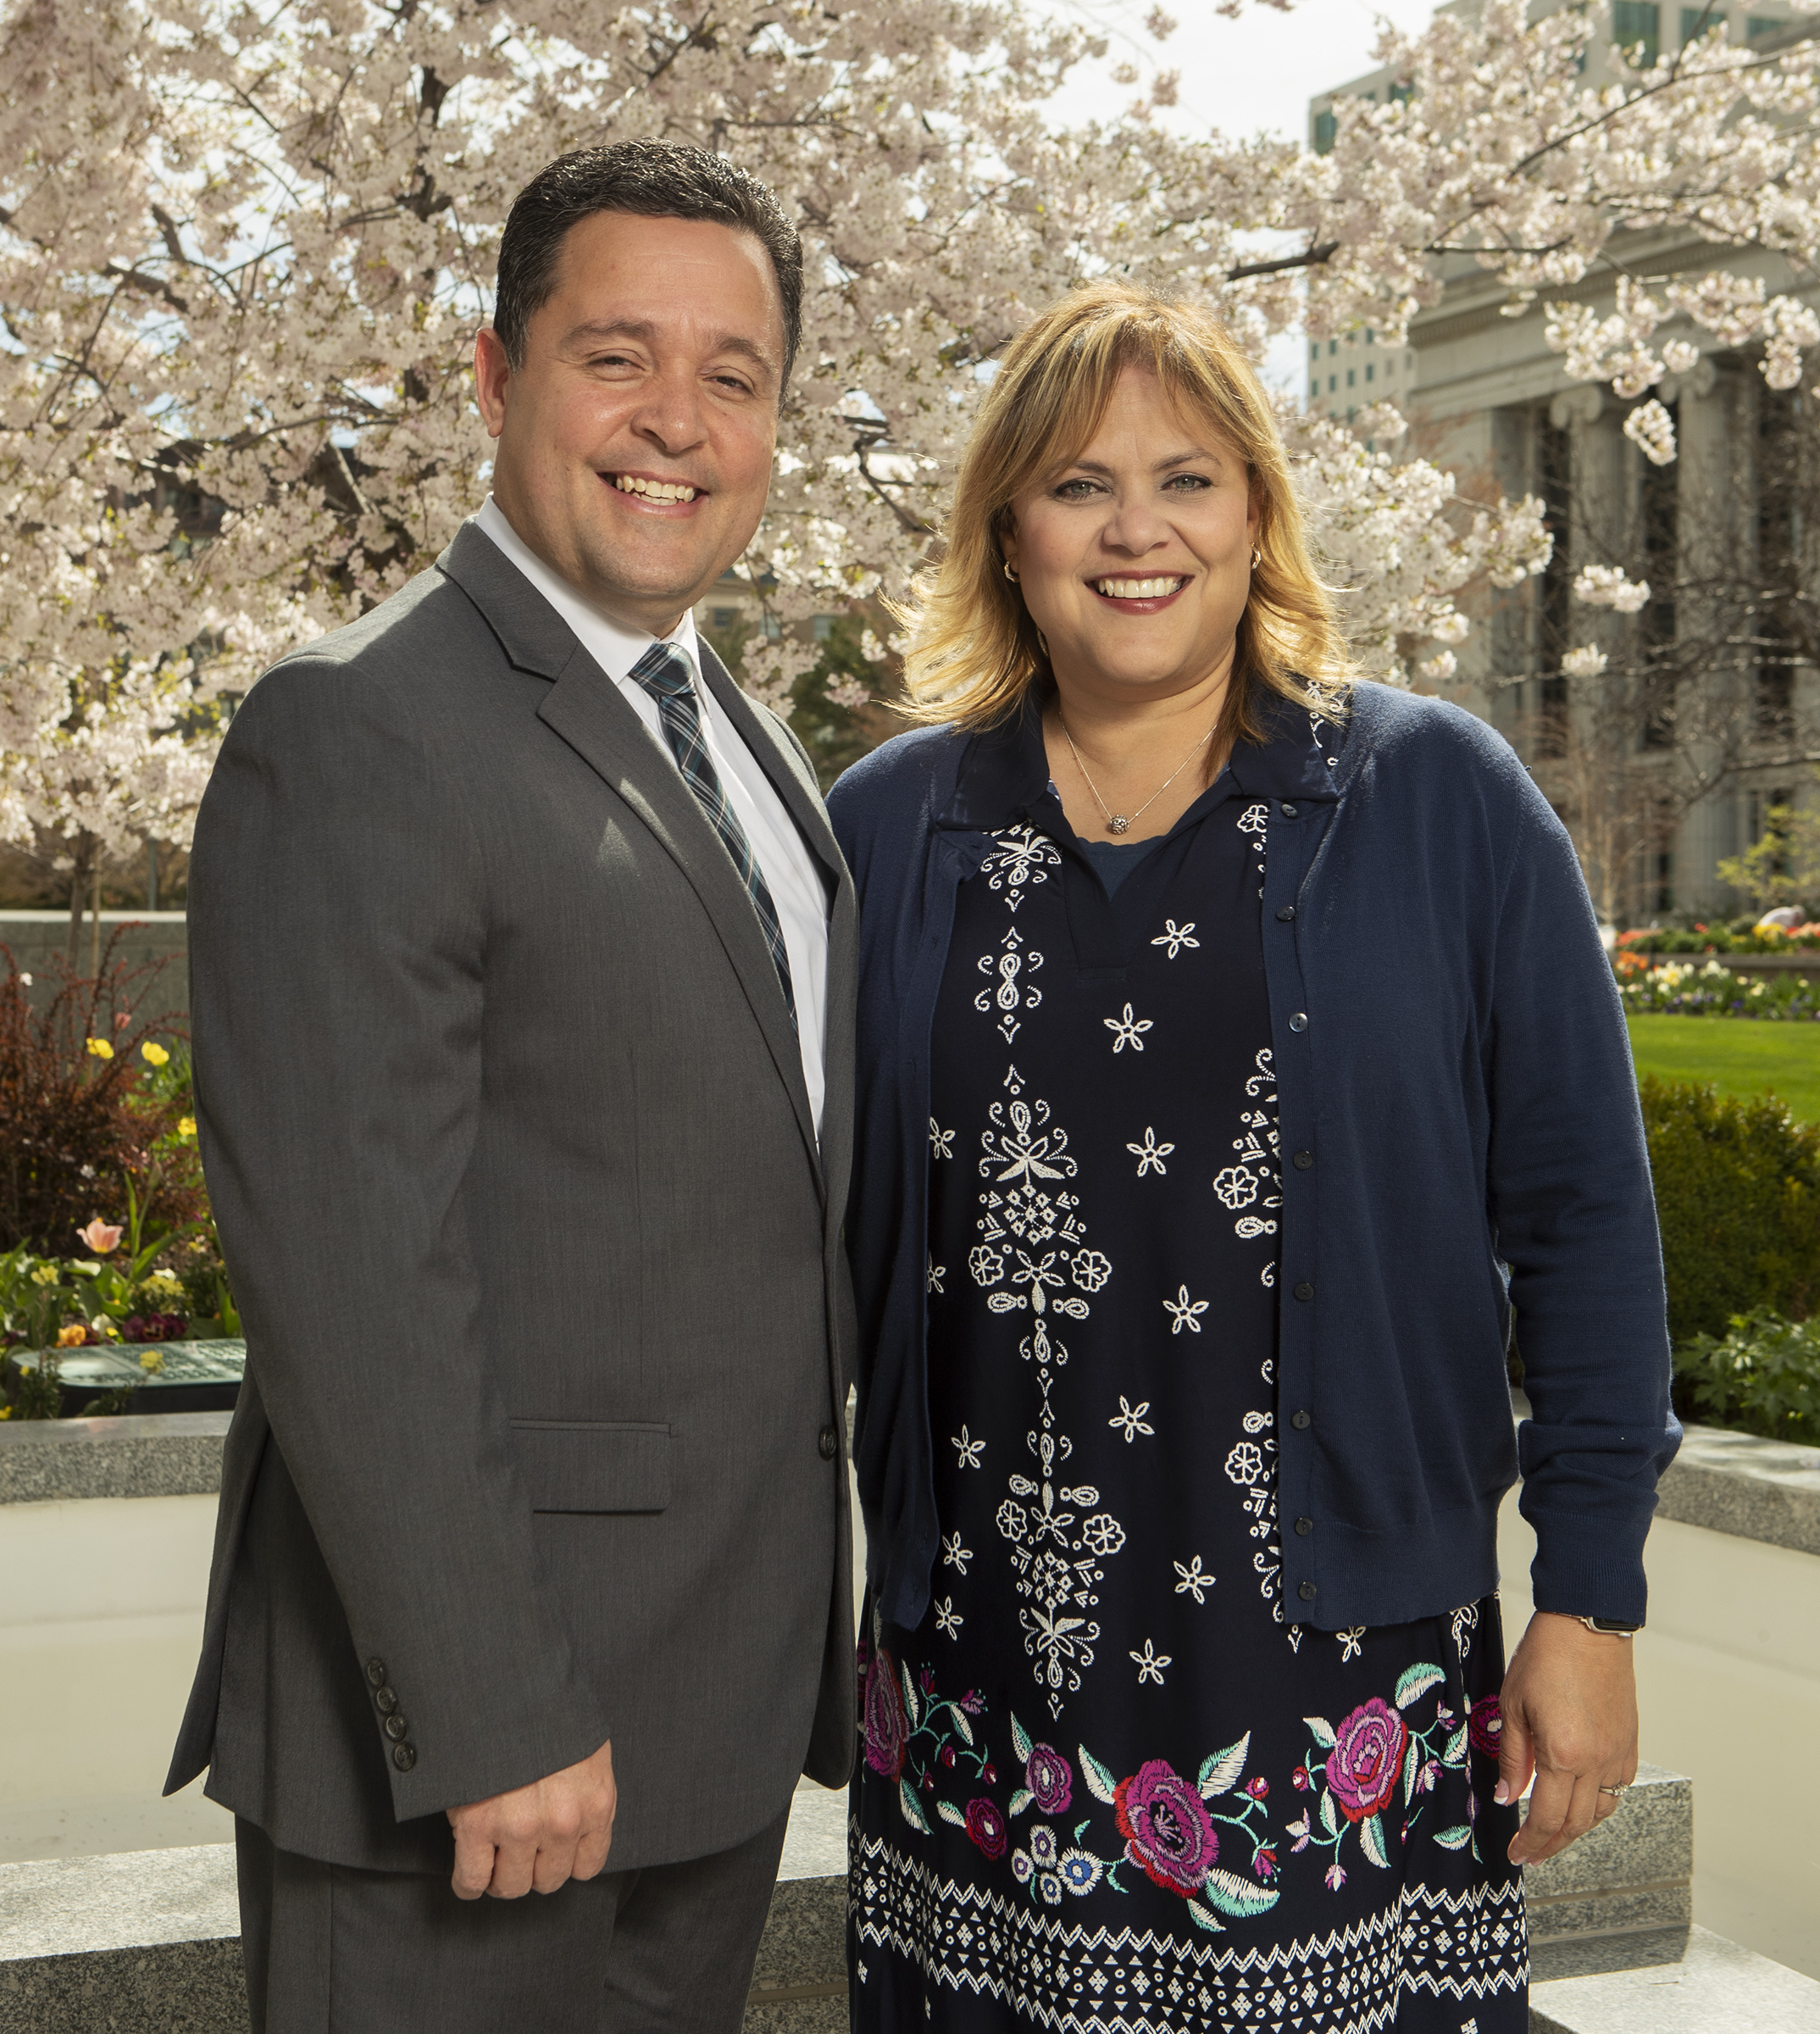 Elder Jorge M. Alvarado and Sister Cari Lu Rios Alvarado pose for a photo at the Church Office Building in Salt Lake City on Monday, April 8, 2019. Elder Alvarado was called to be a General Authority Seventy during the April 2019 general conference.